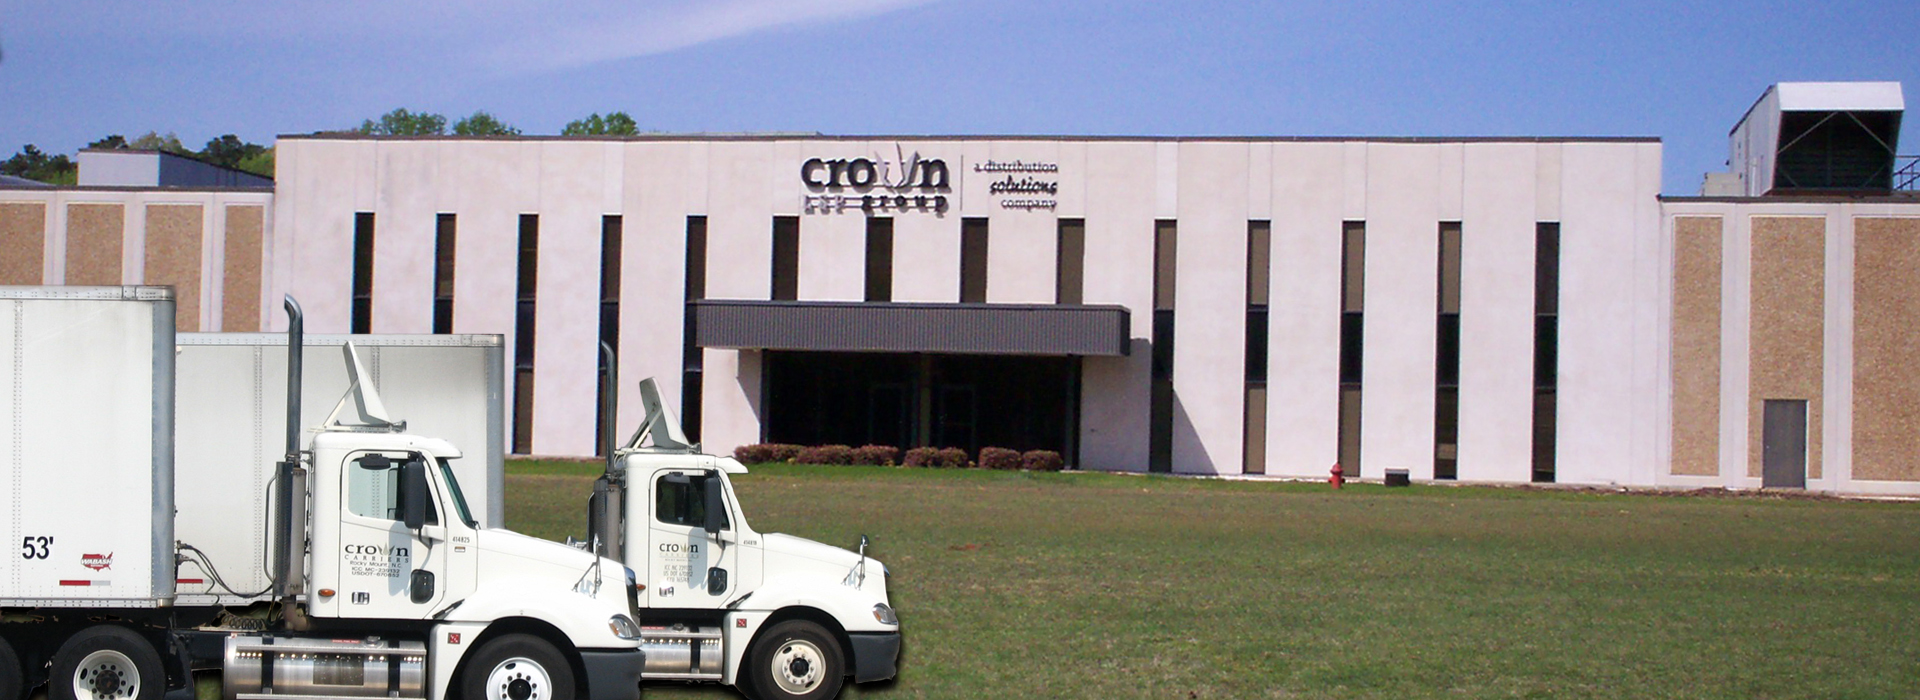 semi truck in front of Crown building